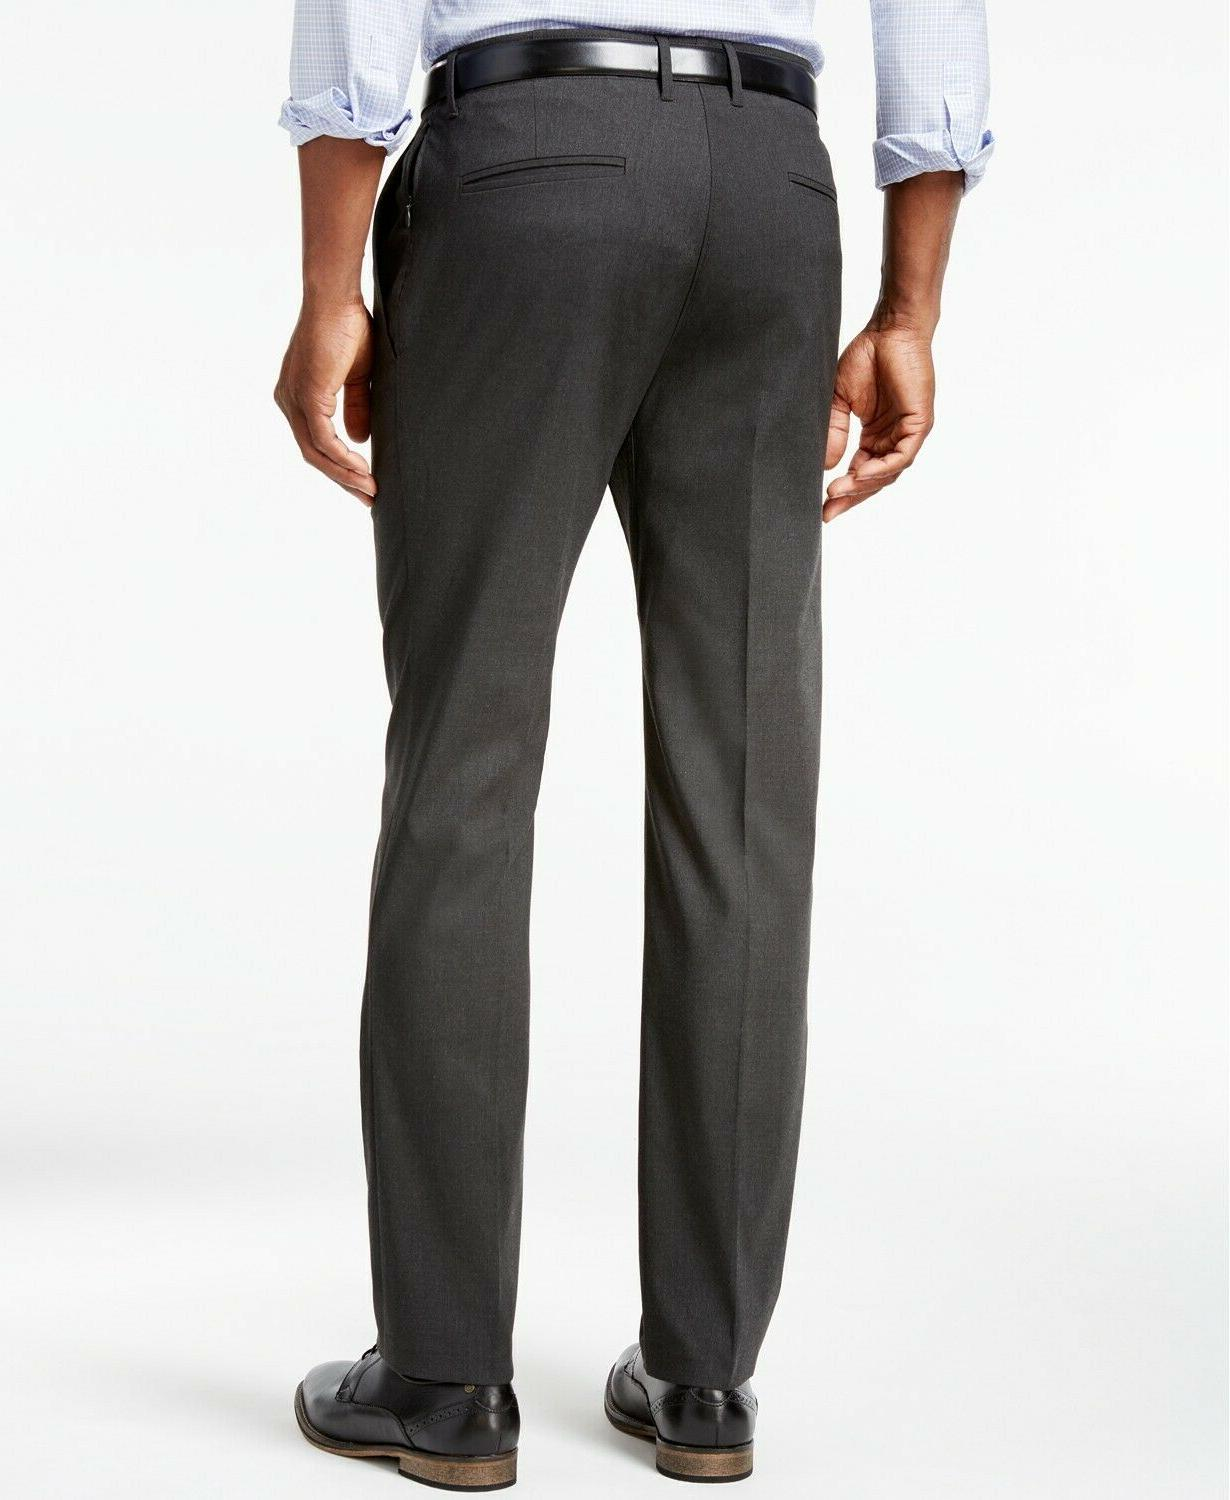 Kenneth Men's Stretch Charcoal, 32x30